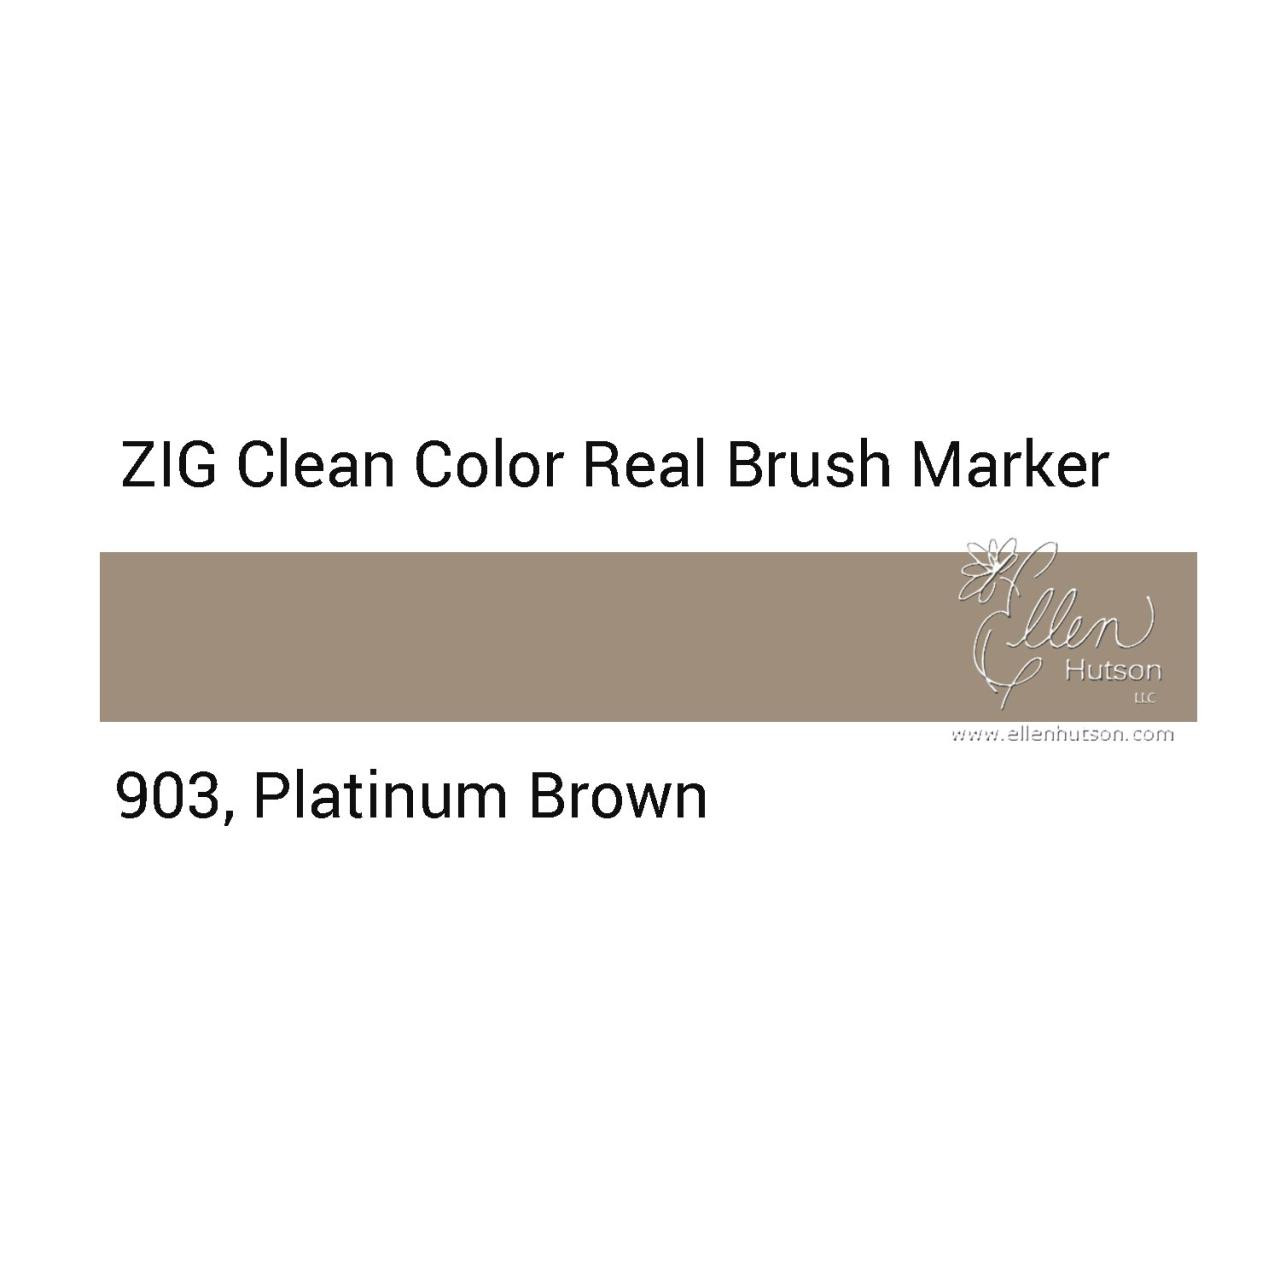 903 - Platinum Brown, ZIG Clean Color Real Brush Marker - 847340037125